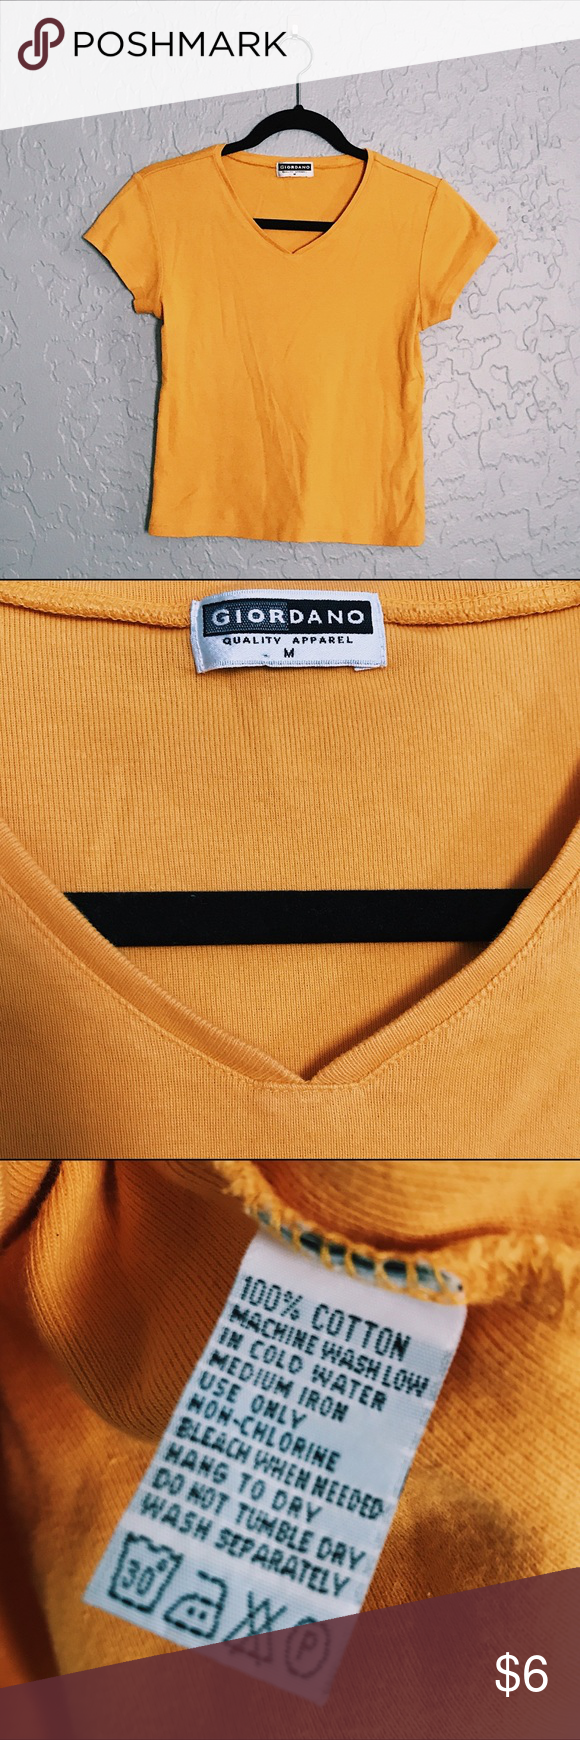 2626c59b3929c Giordano Mustard Yellow V-Neck Shirt This sunny shirt can go well with any  neutral colored bottom